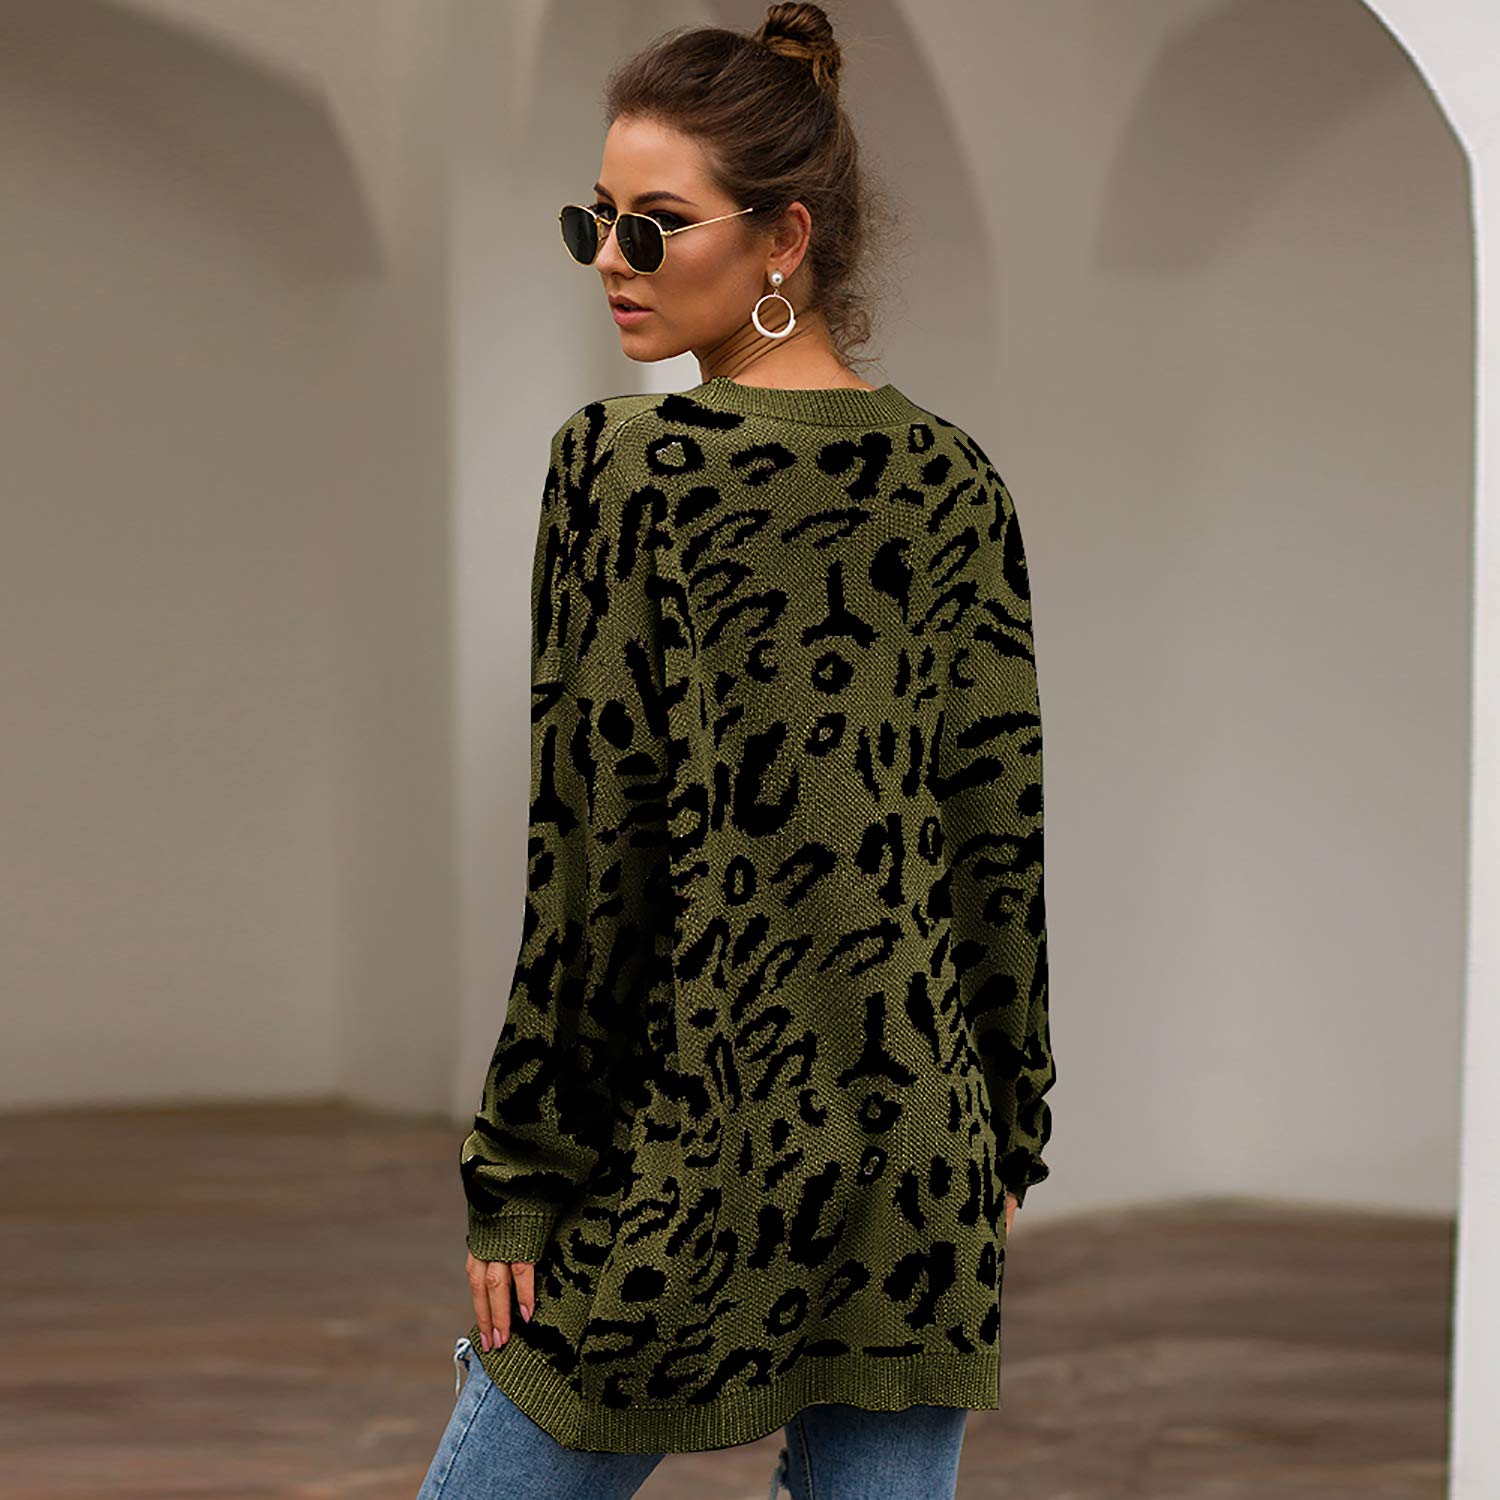 ECOWISH Womens Oversized Leopard Print Sweater Long Sleeve Casual Camouflage Print Knitted Jumper Pullover Sweatshirts Tops